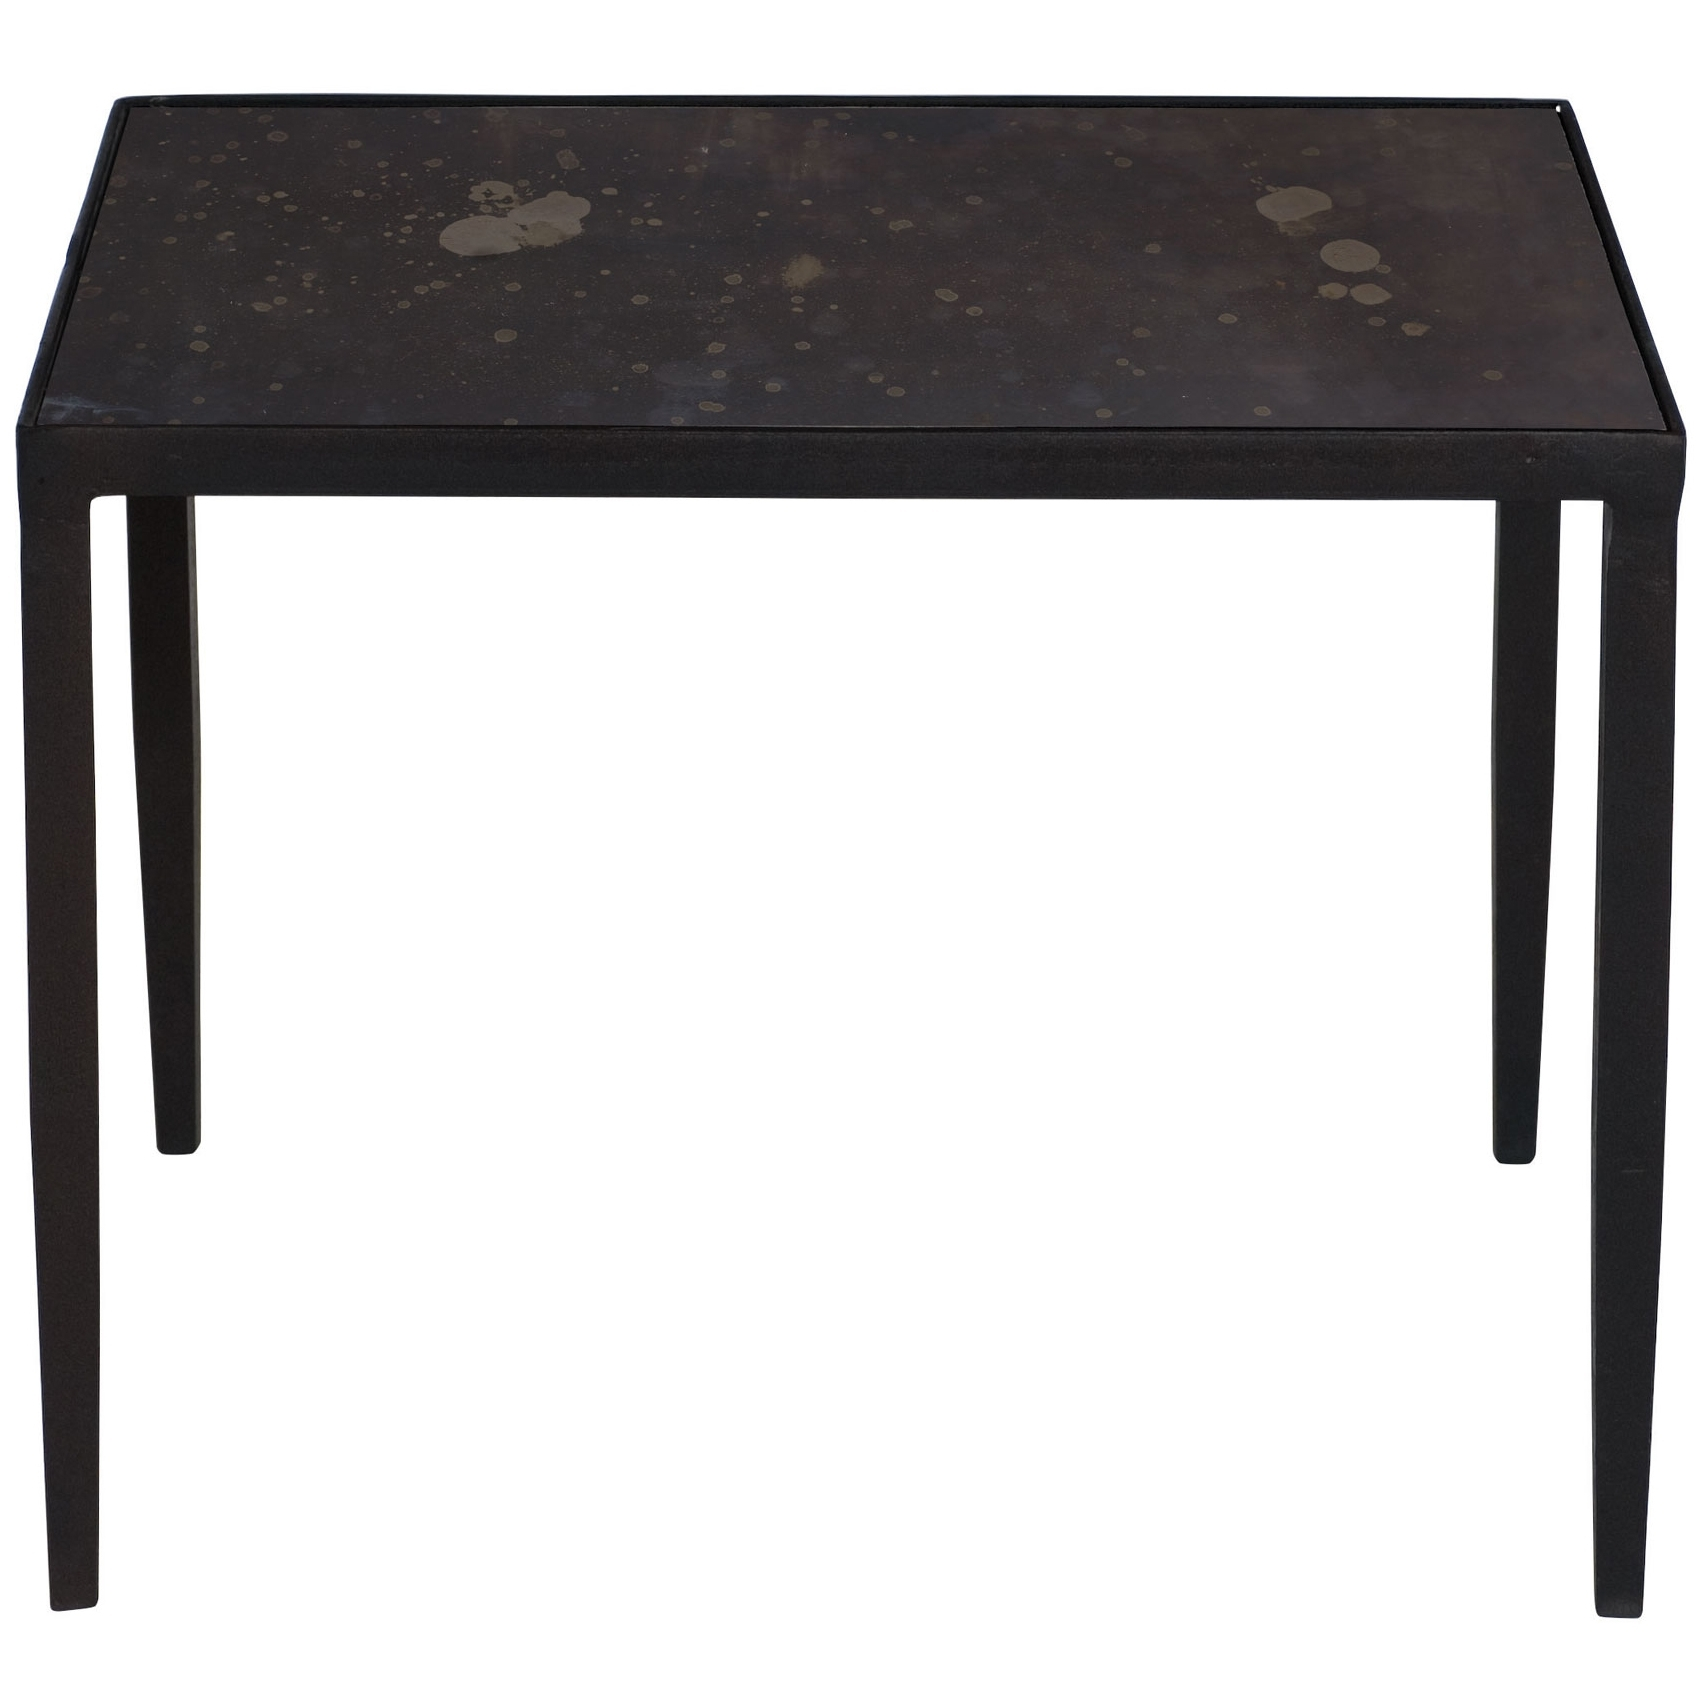 Designer Side & End Tables - Eclectic Side & End Tables | Kathy Kuo Home inside Aged Iron Cube Tables (Image 13 of 30)